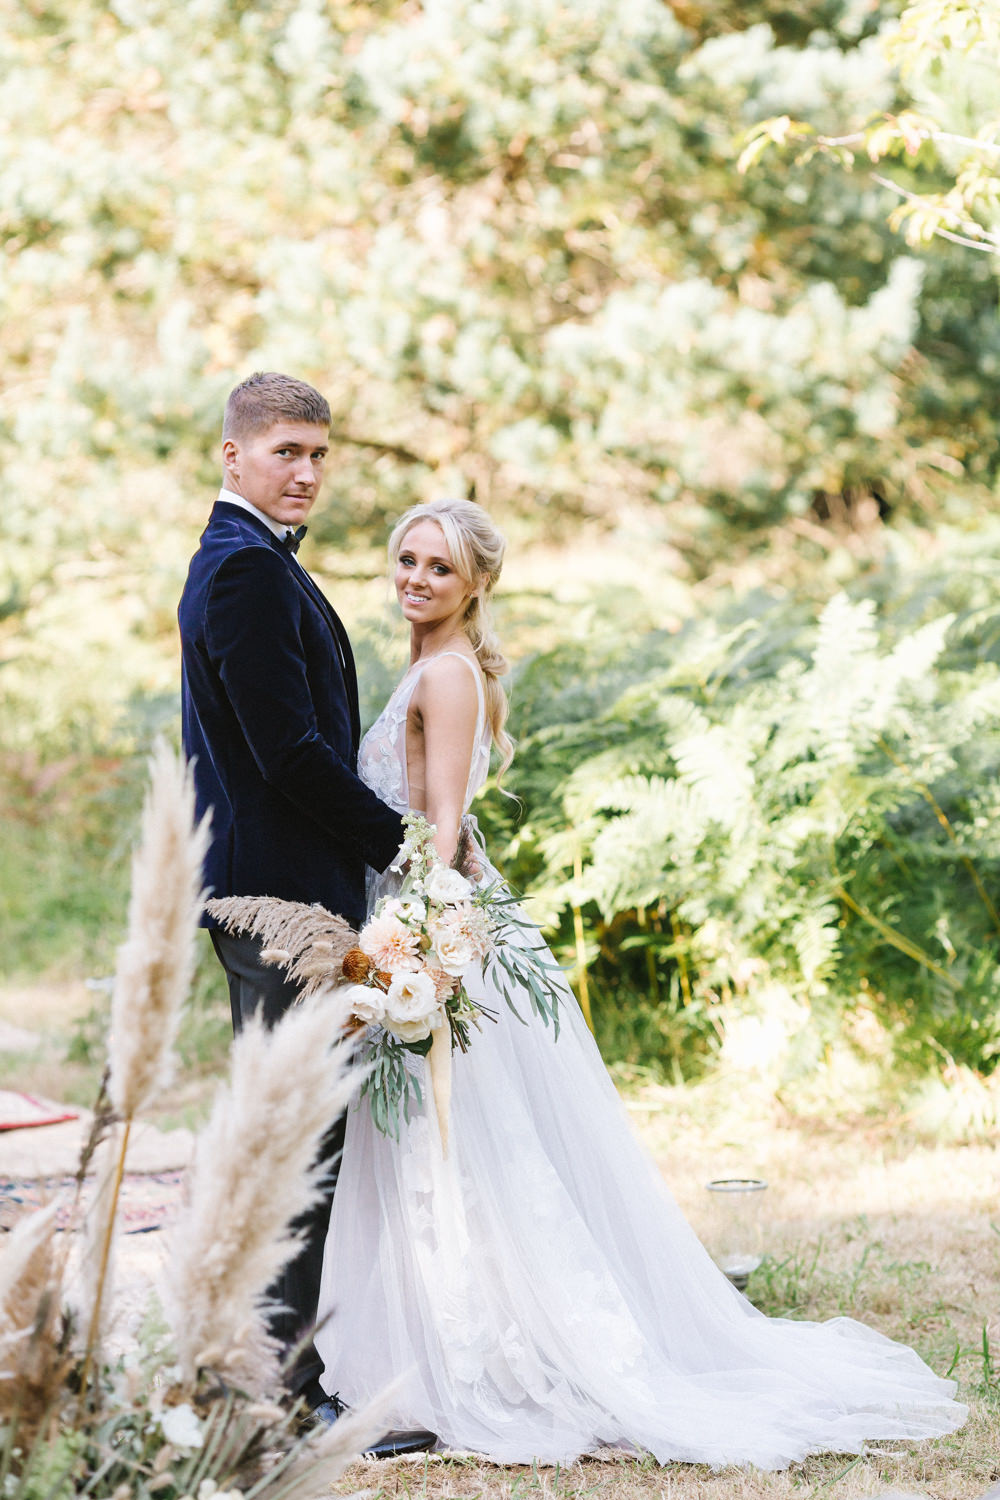 Ceremony Woodland Outdoor Circle Round Chairs Flowers Pampas Grass Palm Leaves Dahlias Aisle Dress Gown Bride Bridal Willowby Embroided Boconnoc Wedding Debs Alexander Photography